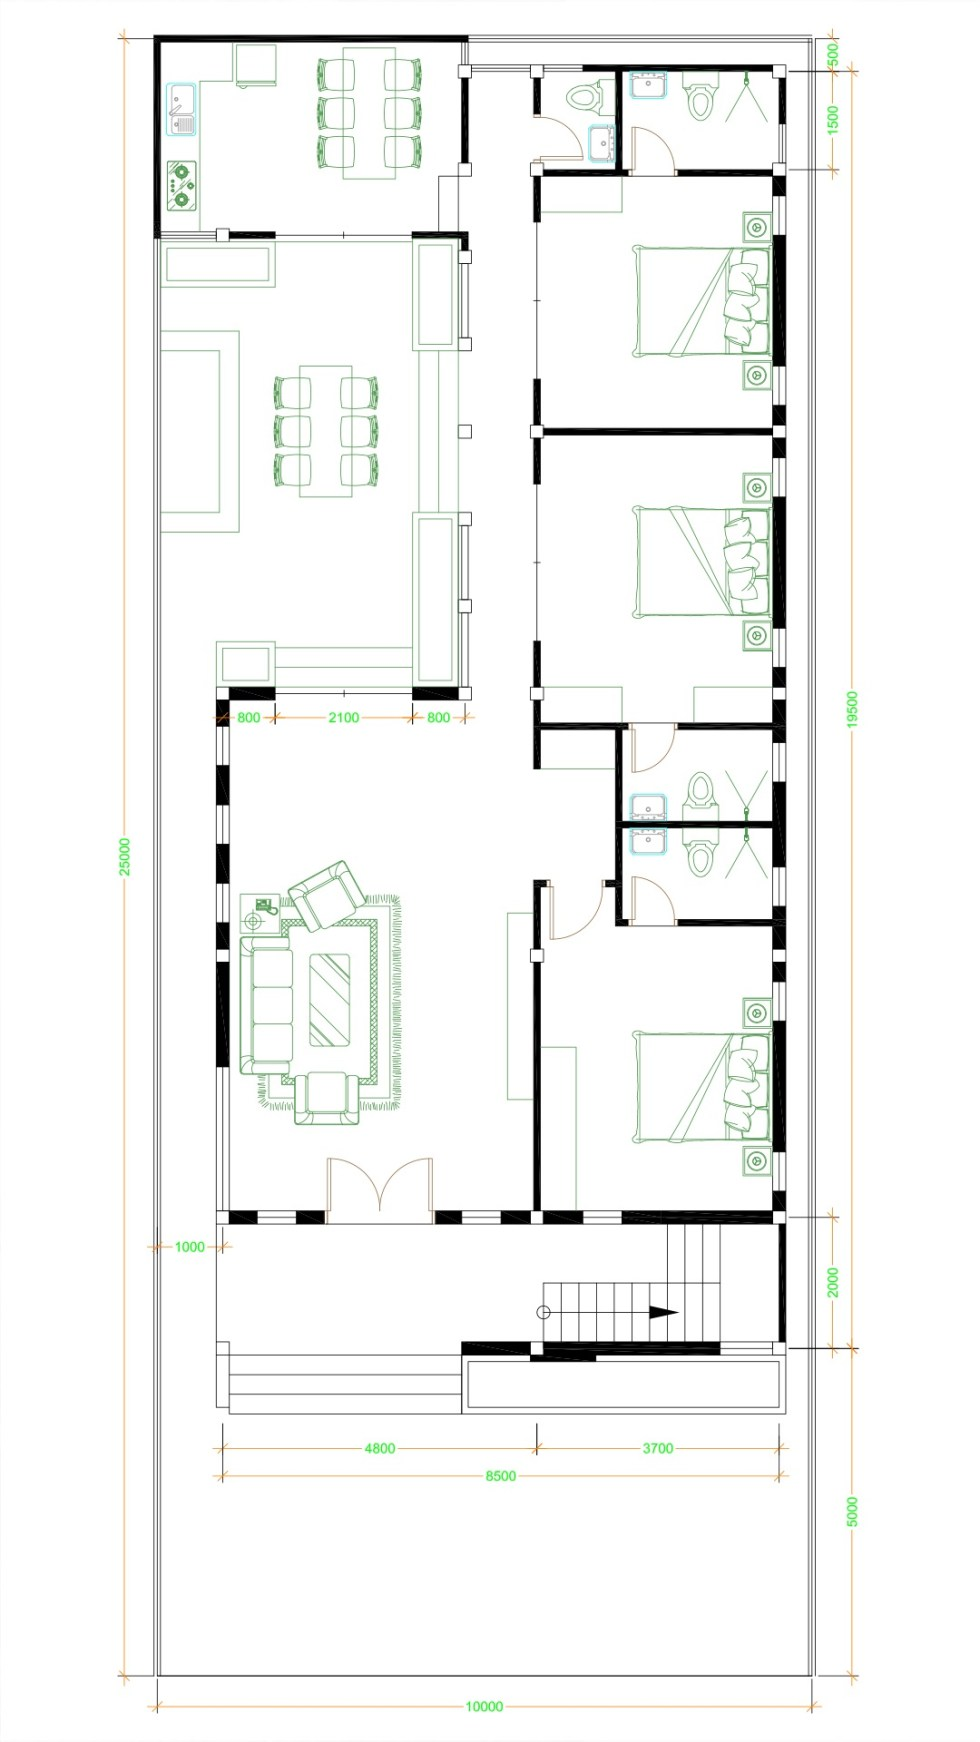 House Design Plans 10x25 with 3 bedrooms